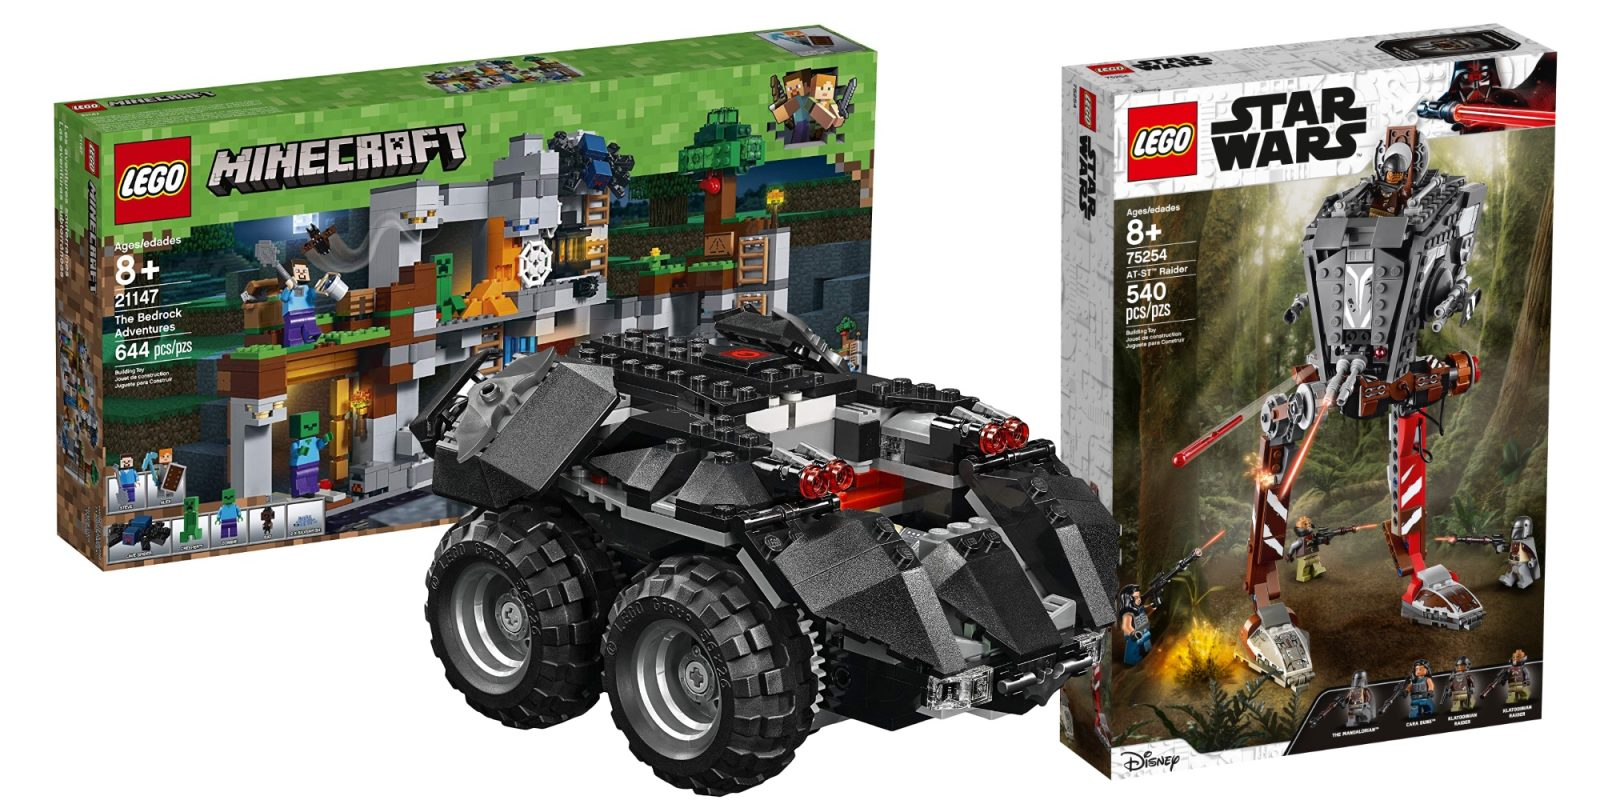 Save on LEGO's App-enabled Batmobile at $76.50 + Star Wars and more from $12